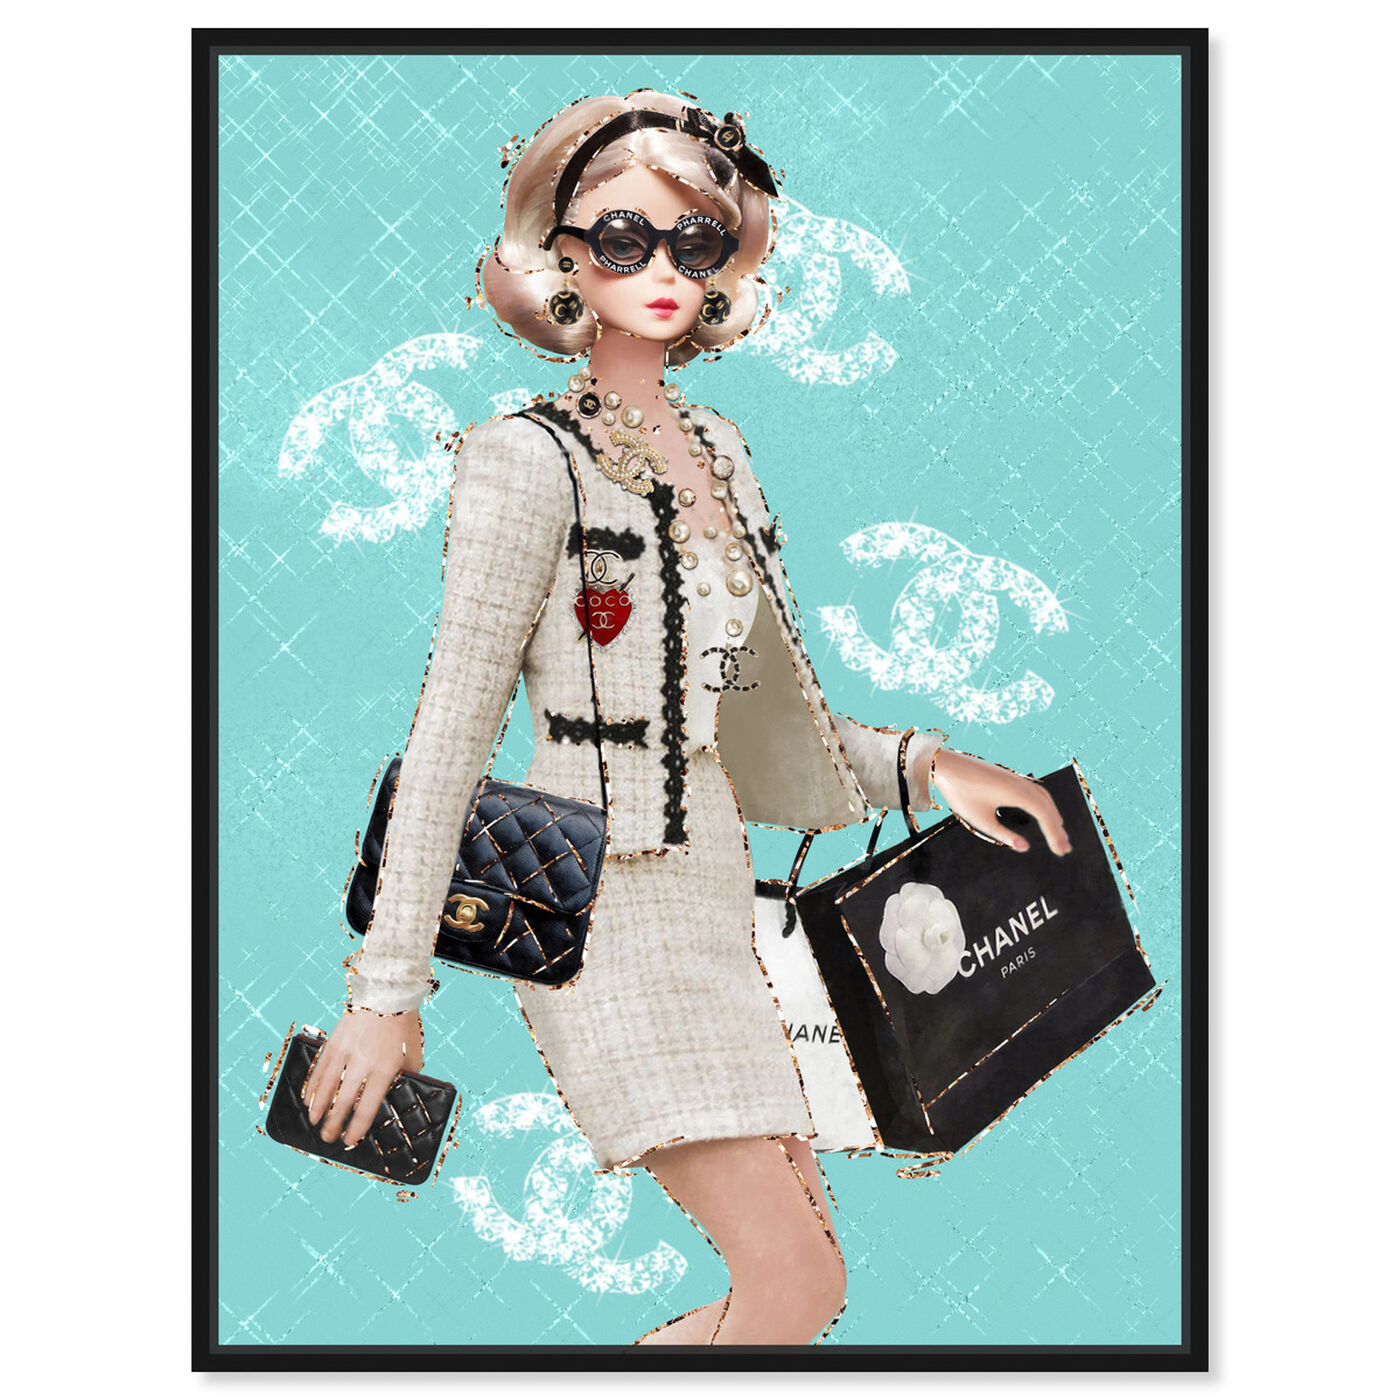 Front view of Breakfast Where? featuring fashion and glam and dolls art.